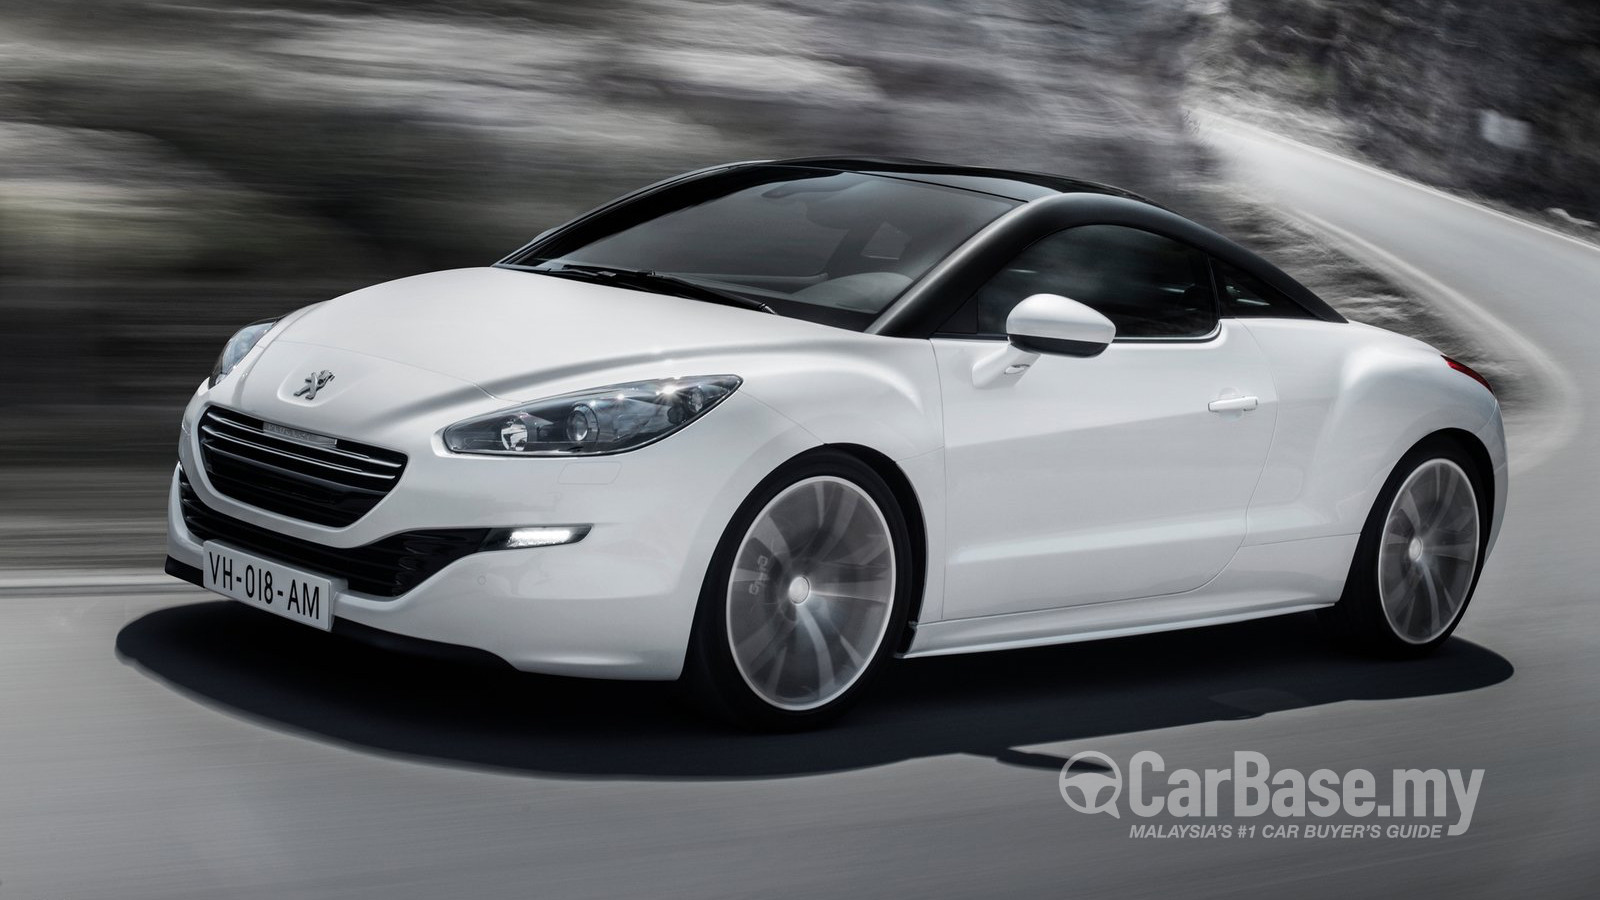 peugeot rcz mk1 facelift (2013) exterior image #7927 in malaysia